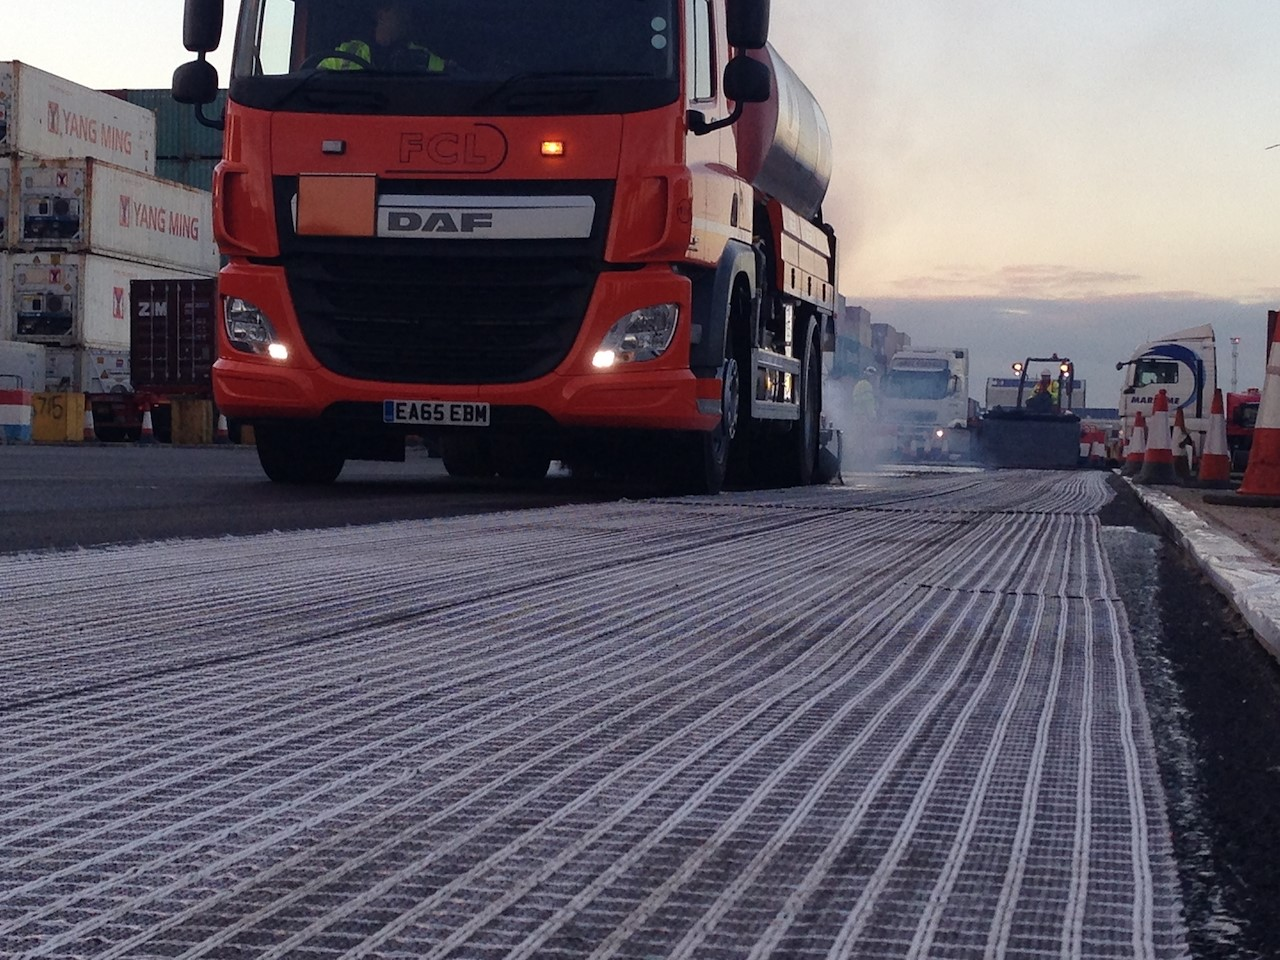 Extending the life of asphalt pavements